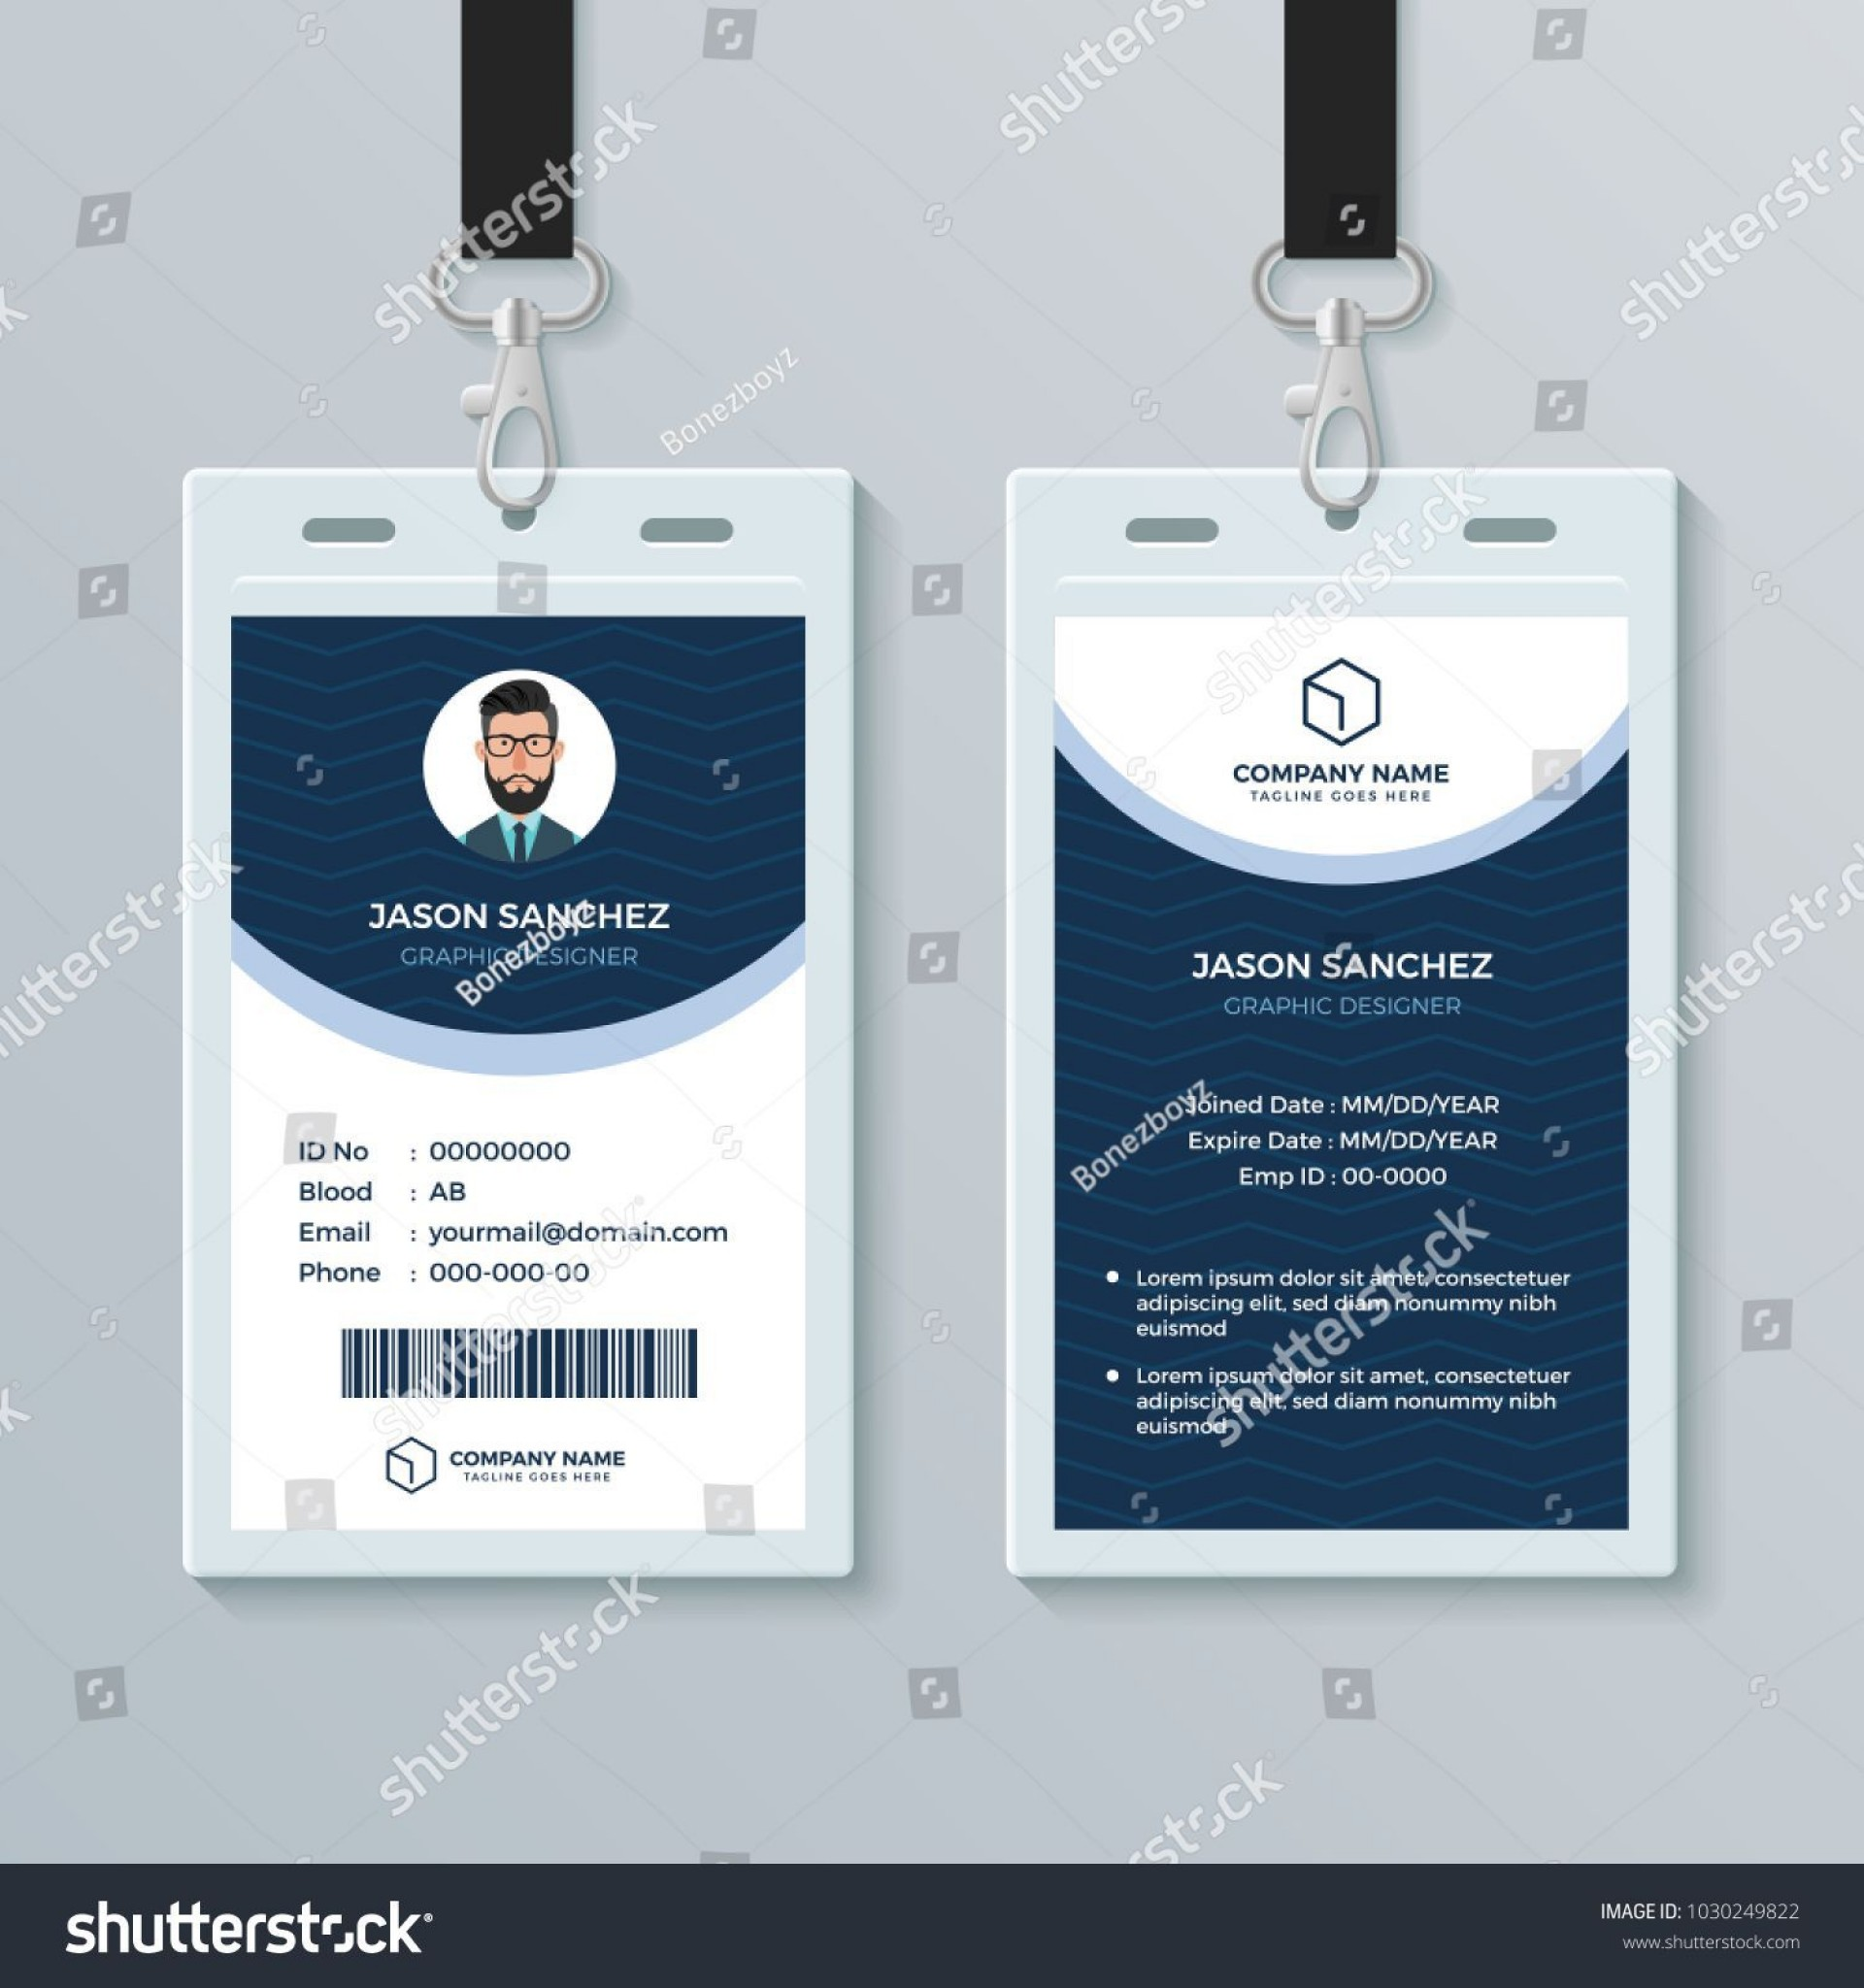 009 Imposing Employee Id Card Template High Definition  Free Download Psd Word1920